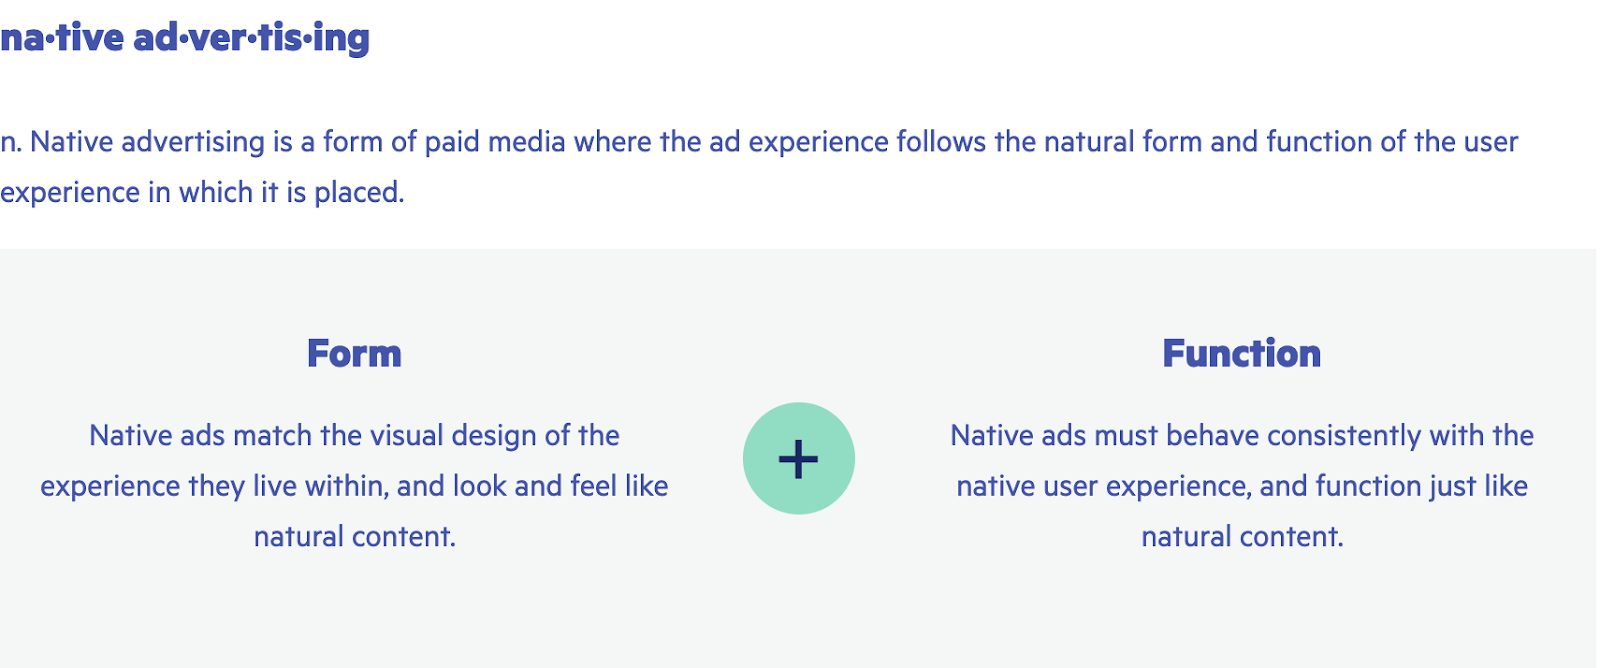 An image showing the definition of native advertising. It breaks the definition down into 2 parts: form, and function.Form = Native ads match the visual design of the experience they live within, and look and feel like natural content.Function = Native ads must behave consistently with the native user experience, and function just like natural content.The suggestion of this definition is that both definitions of form and function must exist simultaneously.